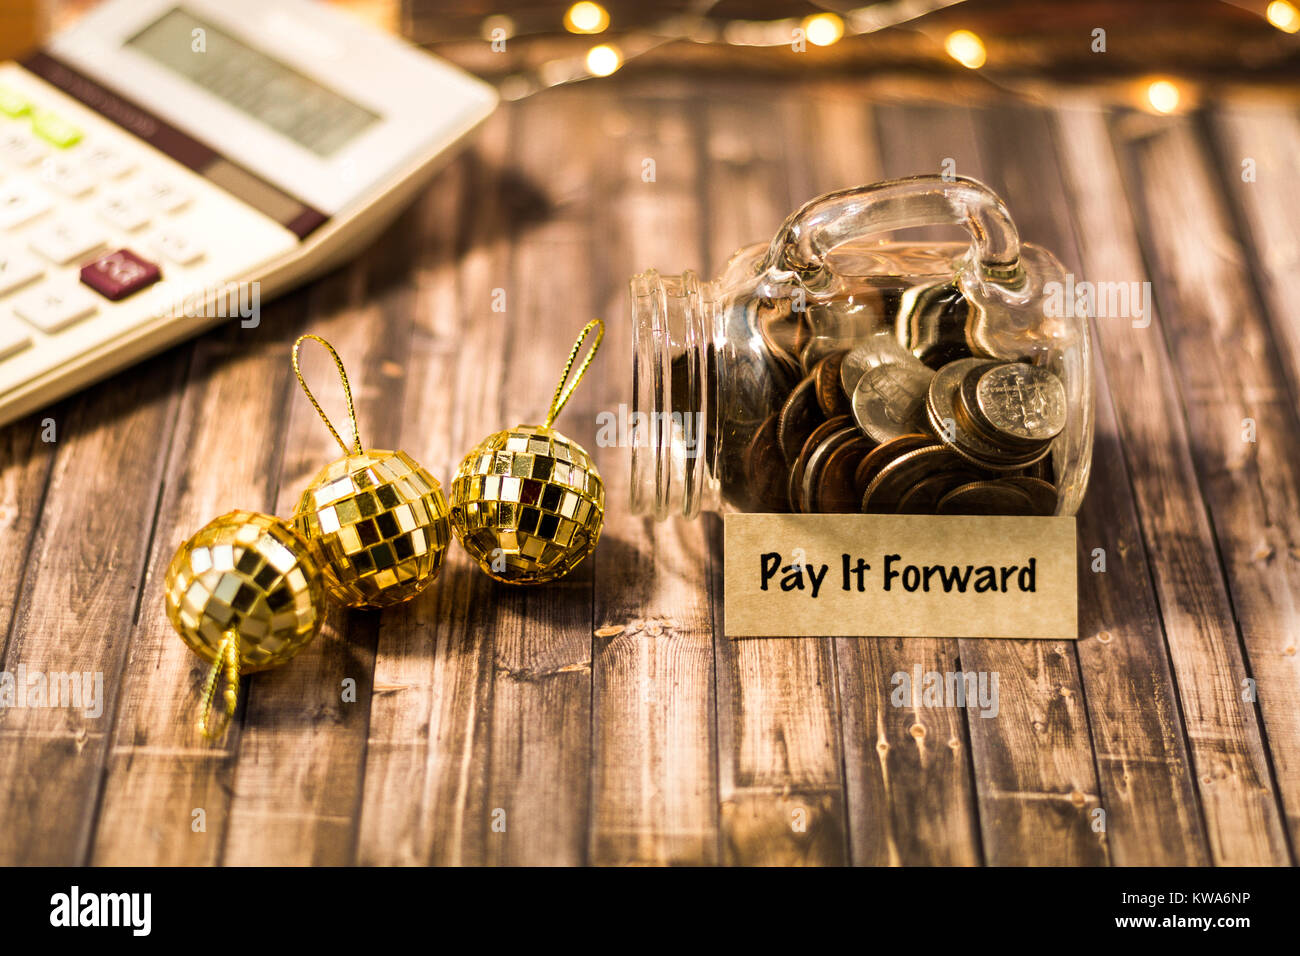 Pay it Forward money jar savings motivational concept on wooden board - Stock Image